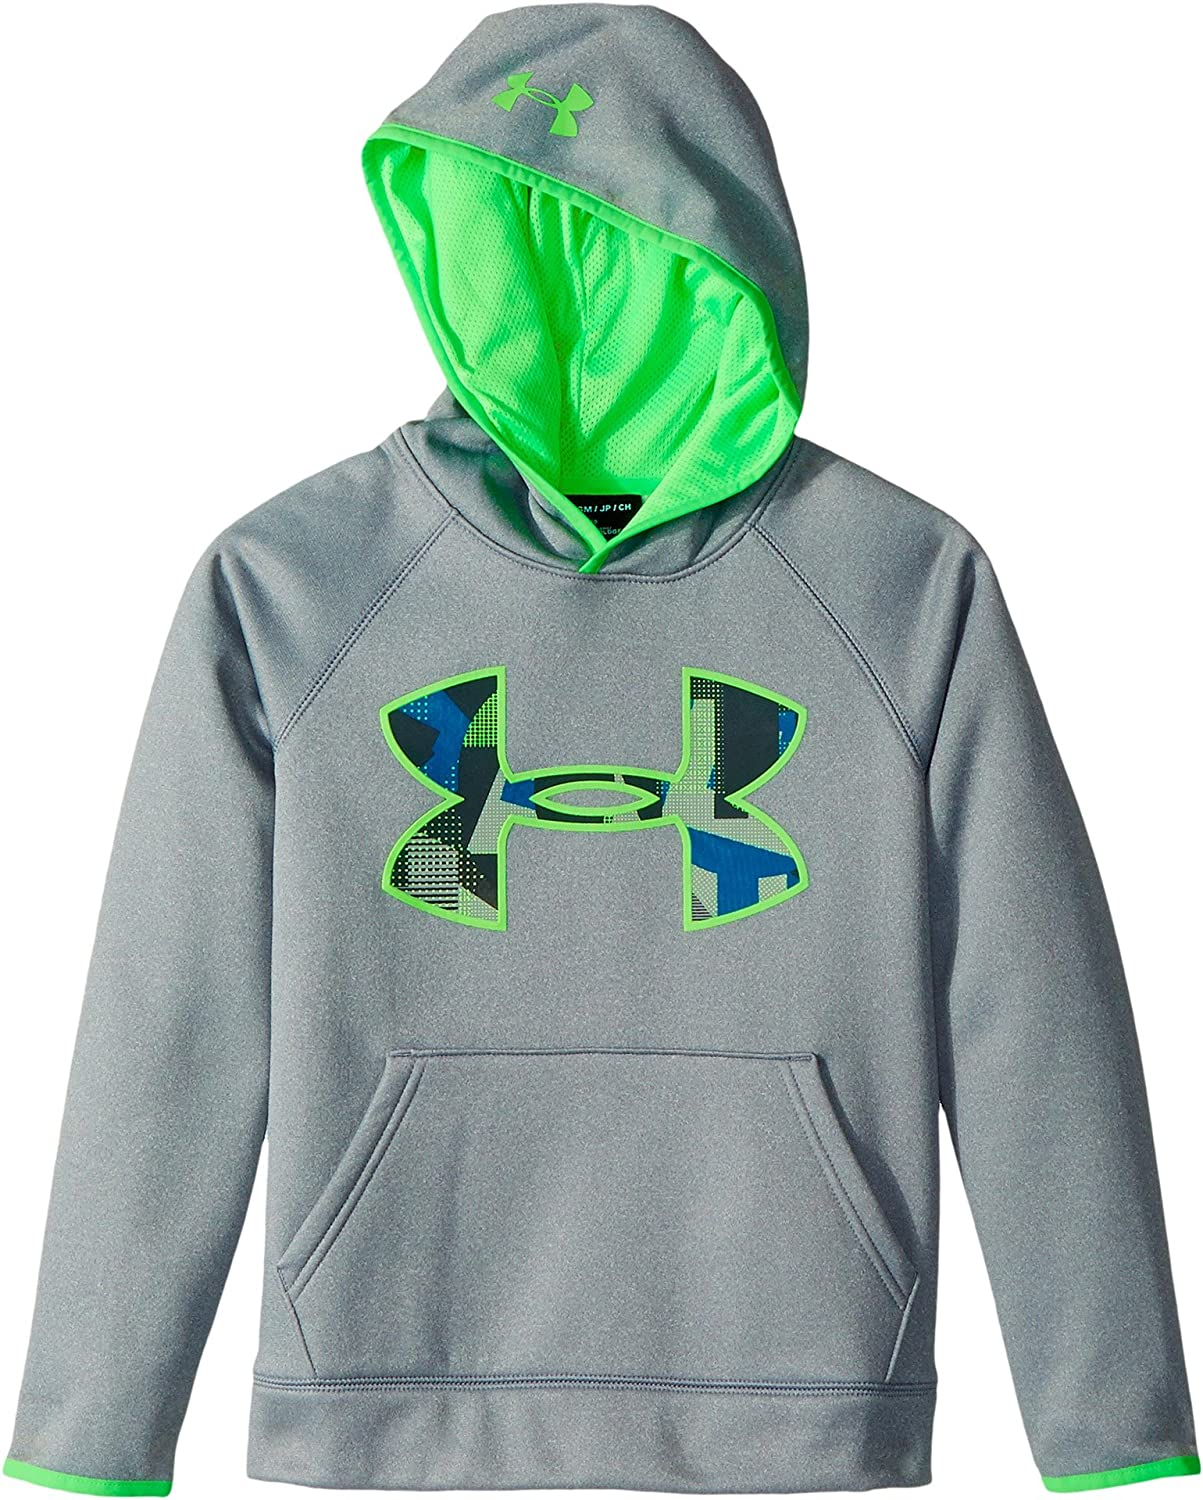 Under Armour WWP Property Of Fleece Hoodie Carbon 1261127-090